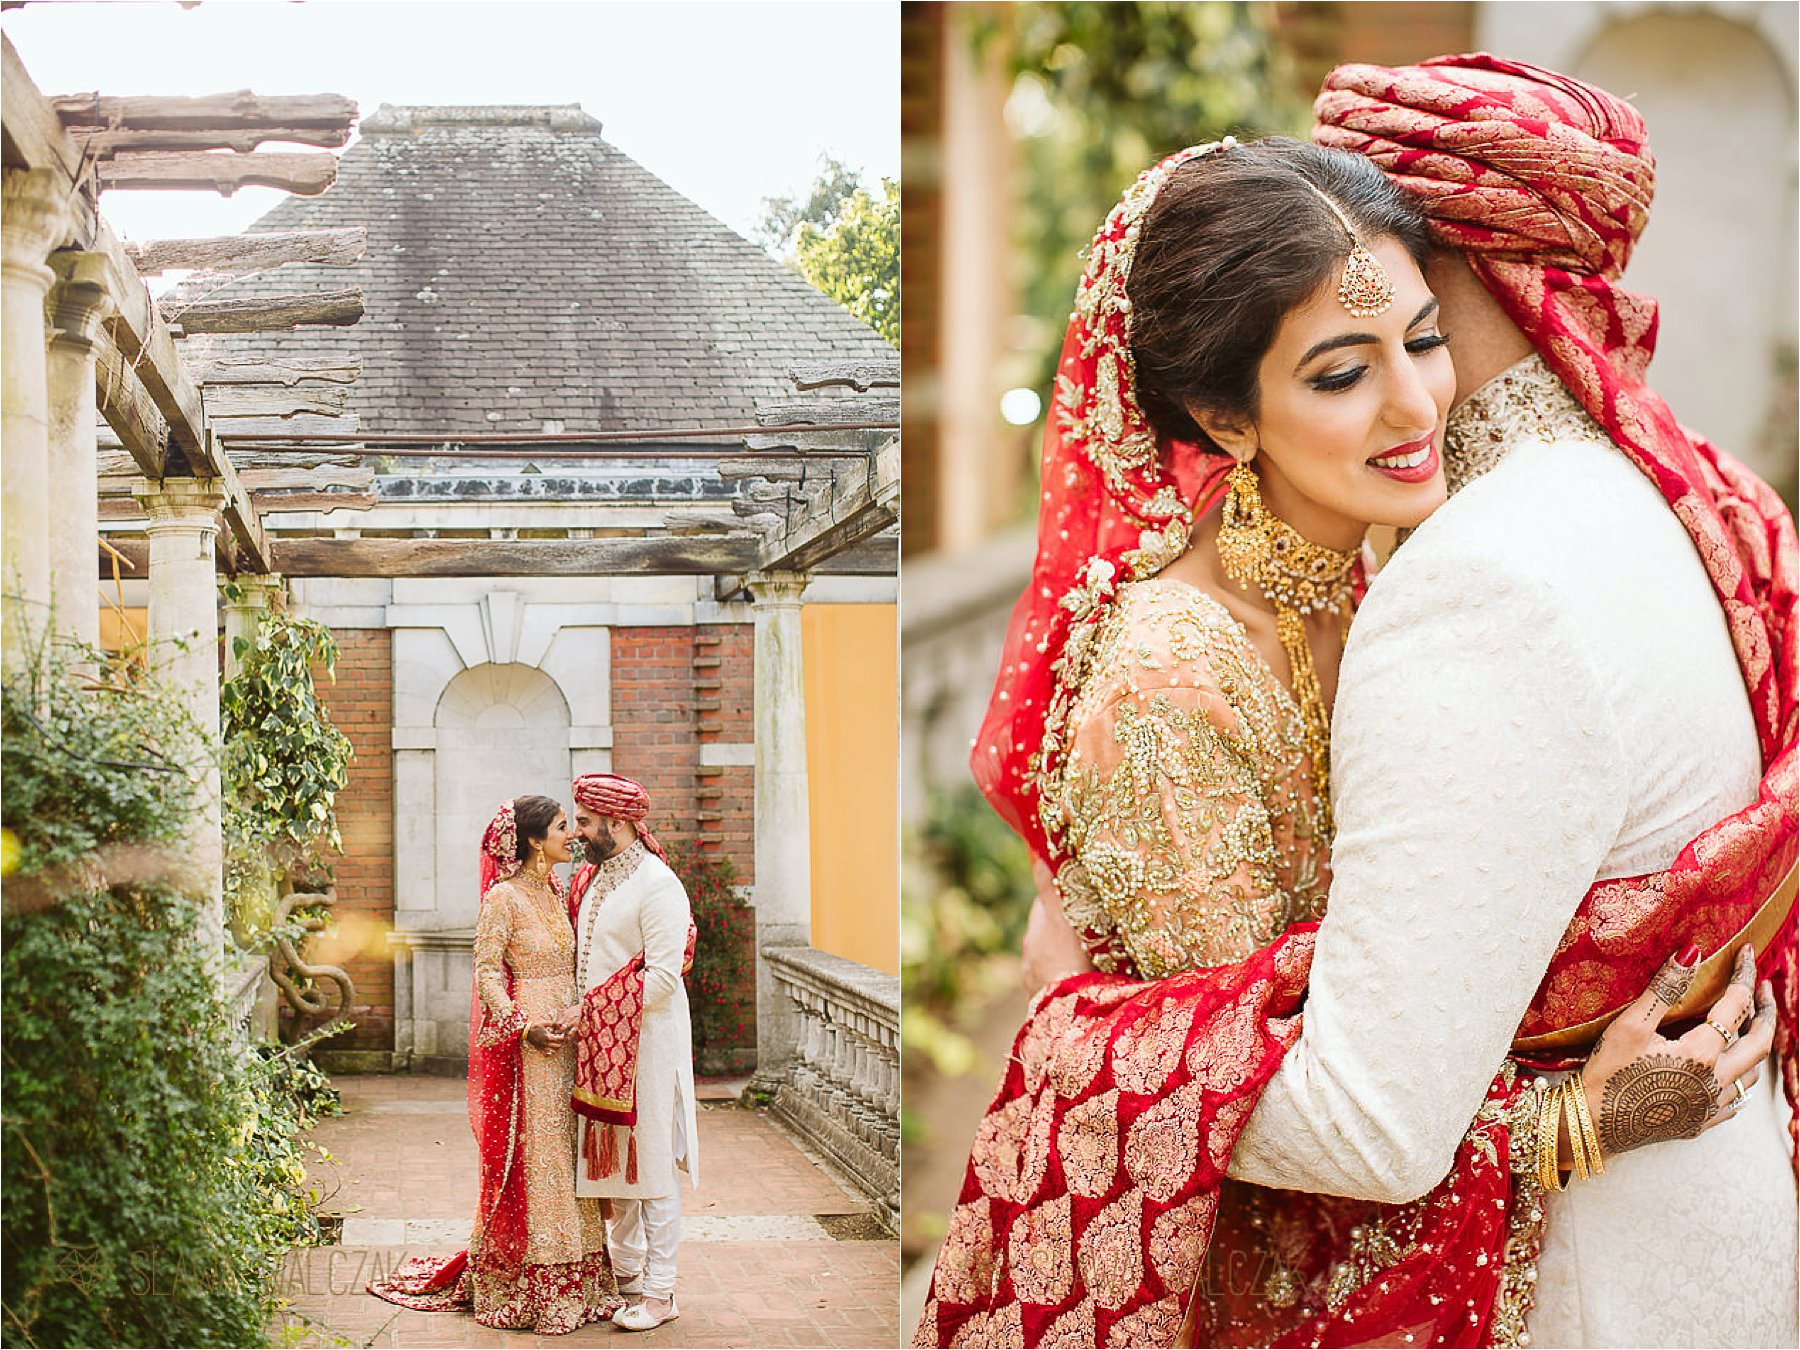 The Hill Garden & Hampstead Heath Pergola Wedding Photoshoot